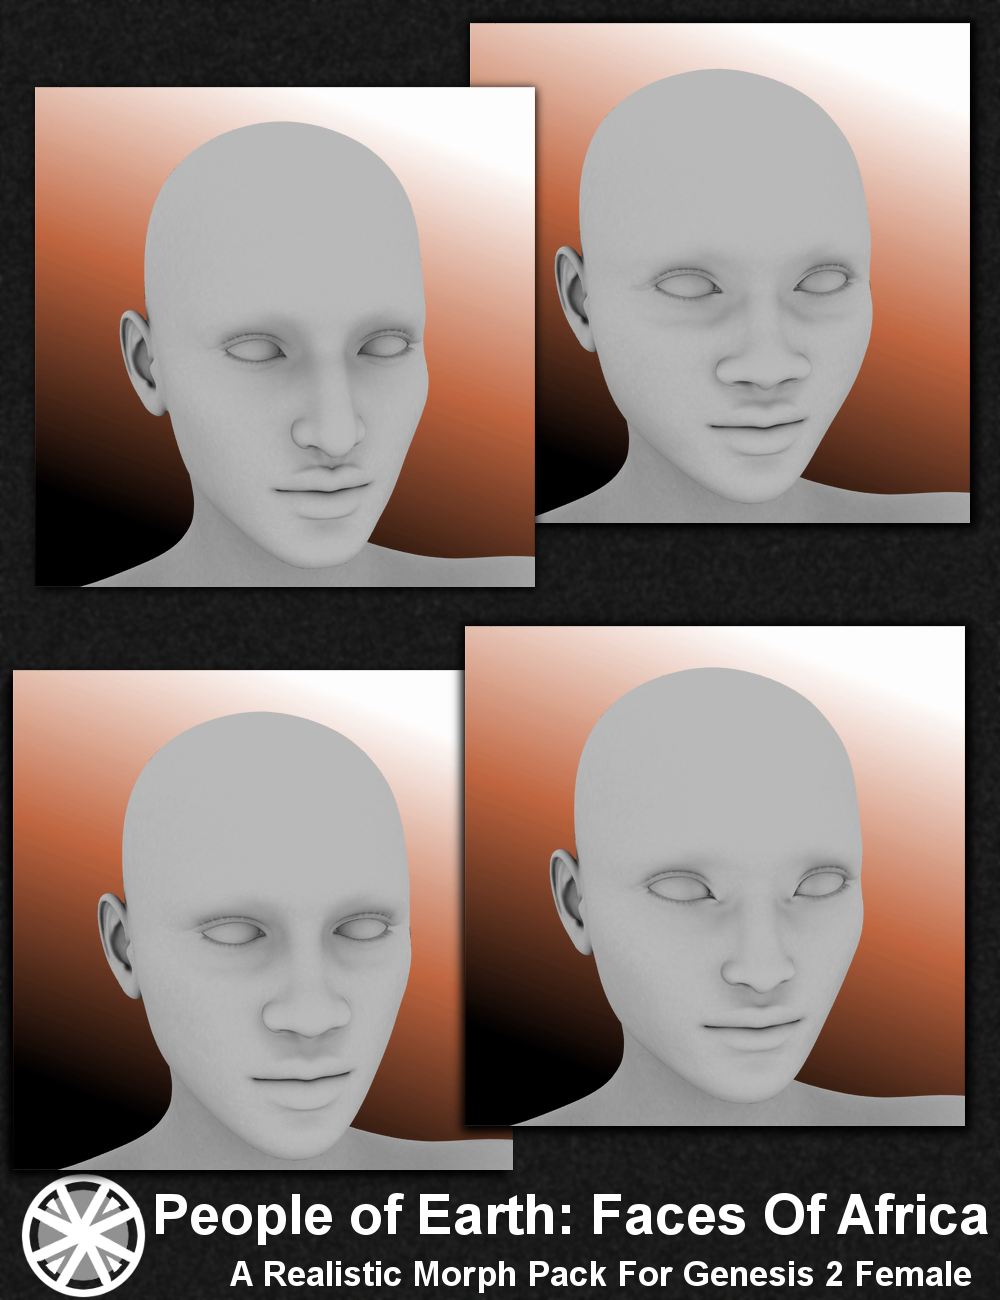 People of Earth: Faces of Africa Genesis 2 Female(s) by: Sickleyield, 3D Models by Daz 3D